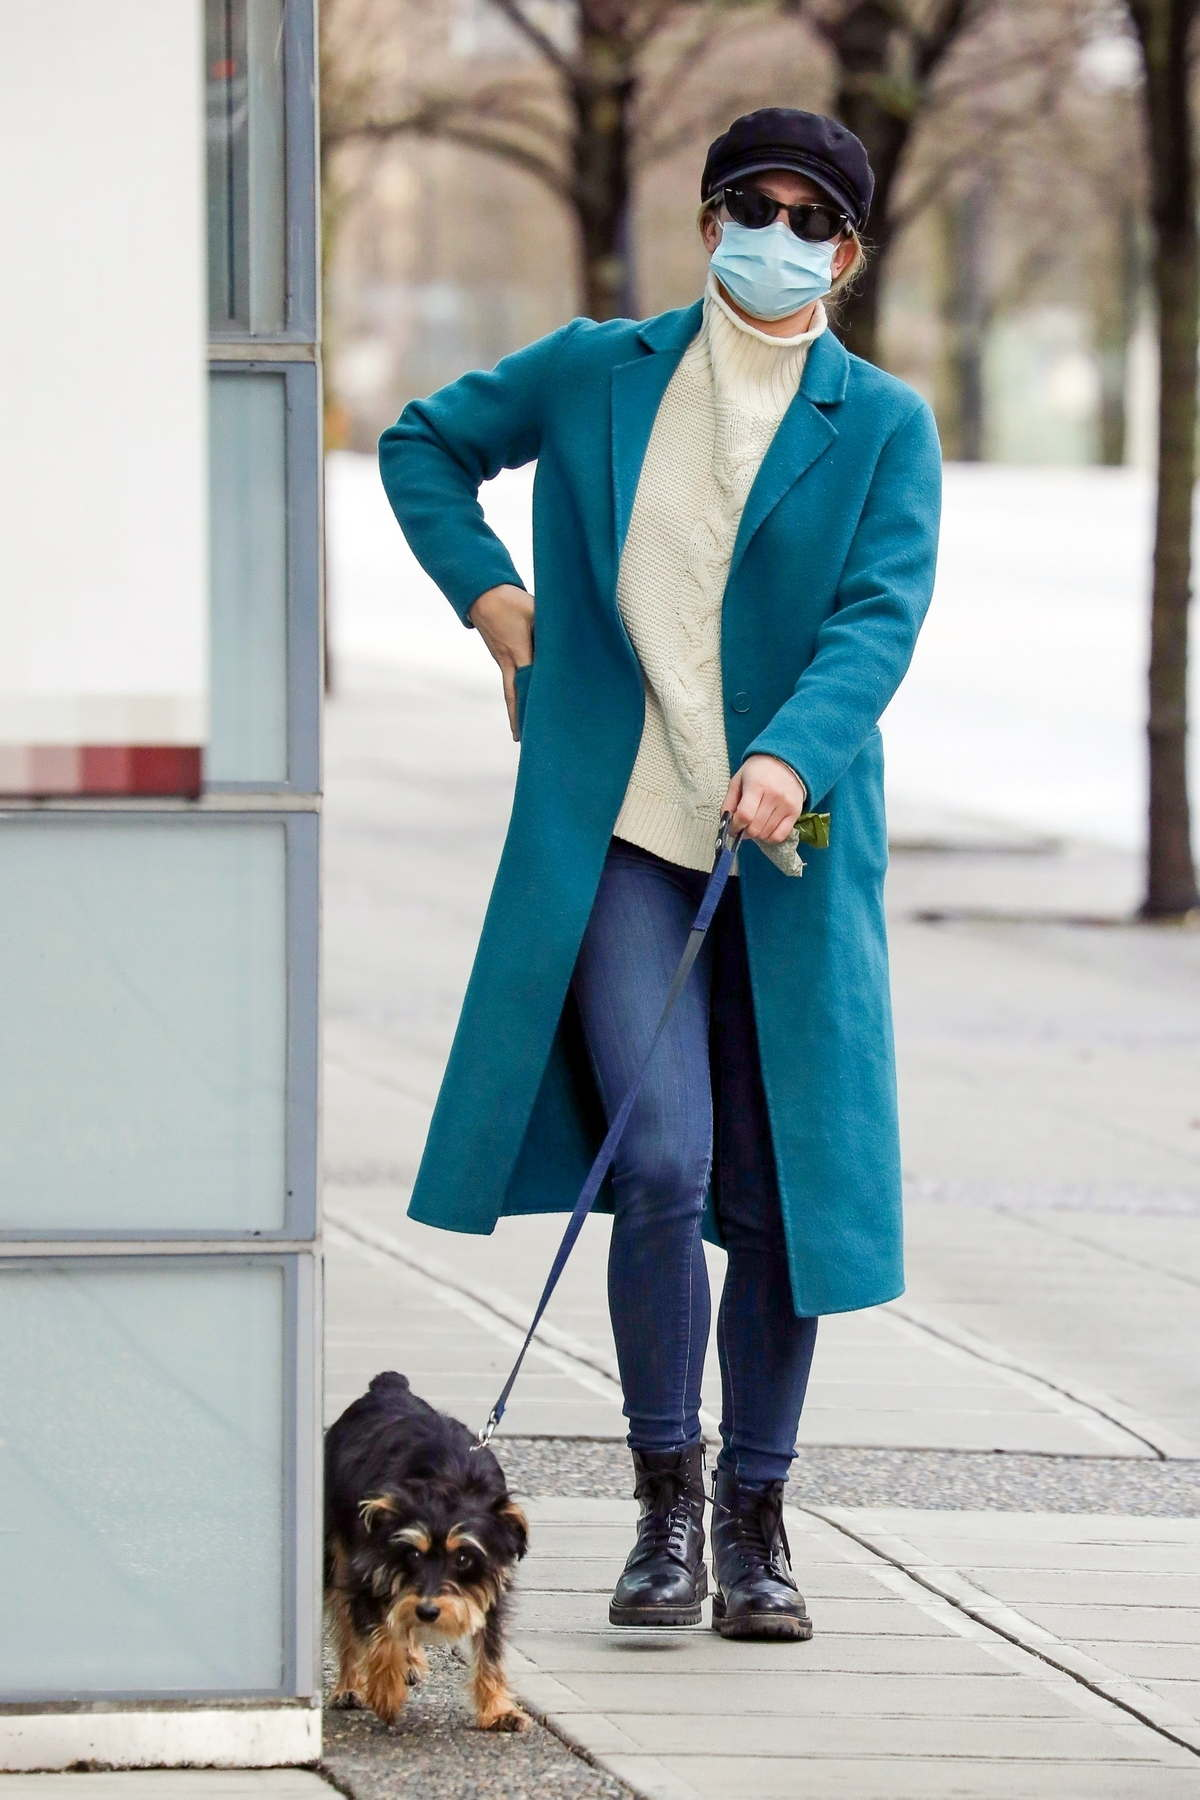 Lili Reinhart stays warm in a cream sweater and a turquoise coat while walking her dog in Vancouver, Canada